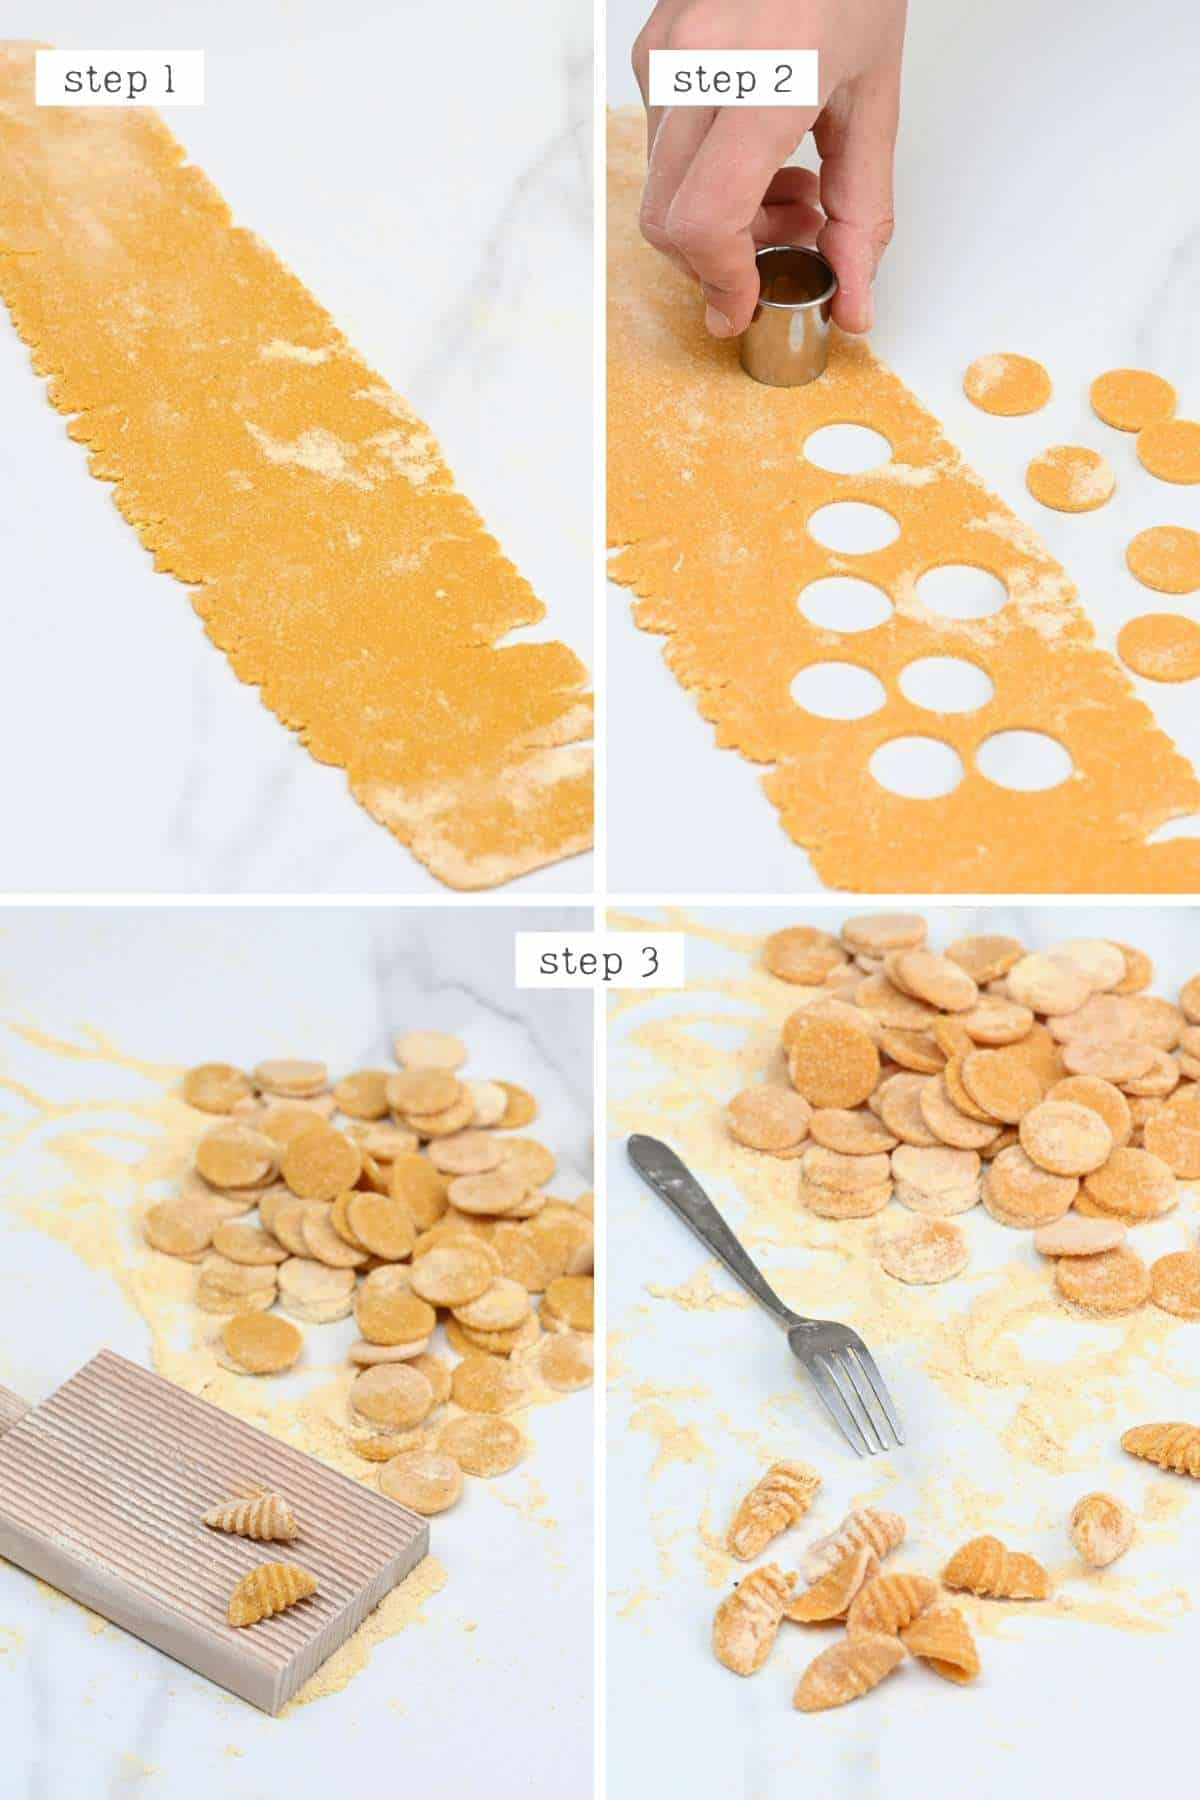 Steps for forming pasta